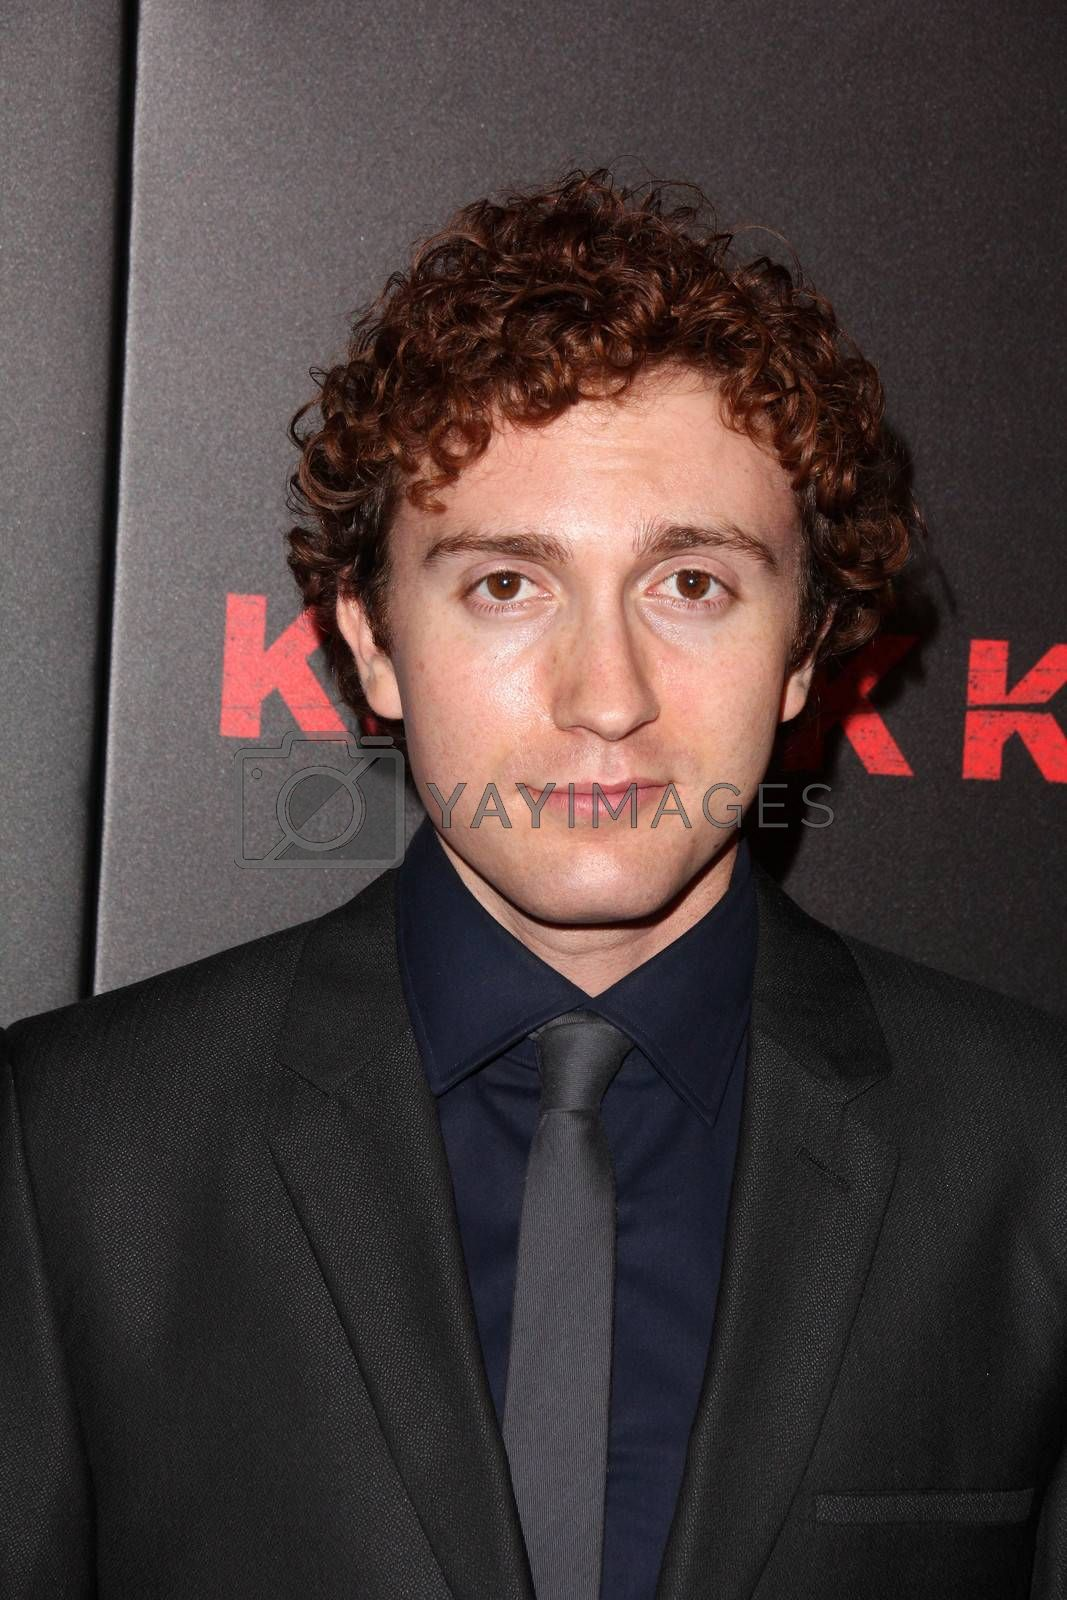 """Daryl Sabara at the """"Knock Knock"""" Los Angeles Premiere, TCL Chinese Theater, Hollywood, CA 10-08-15/ImageCollect by ImageCollect"""